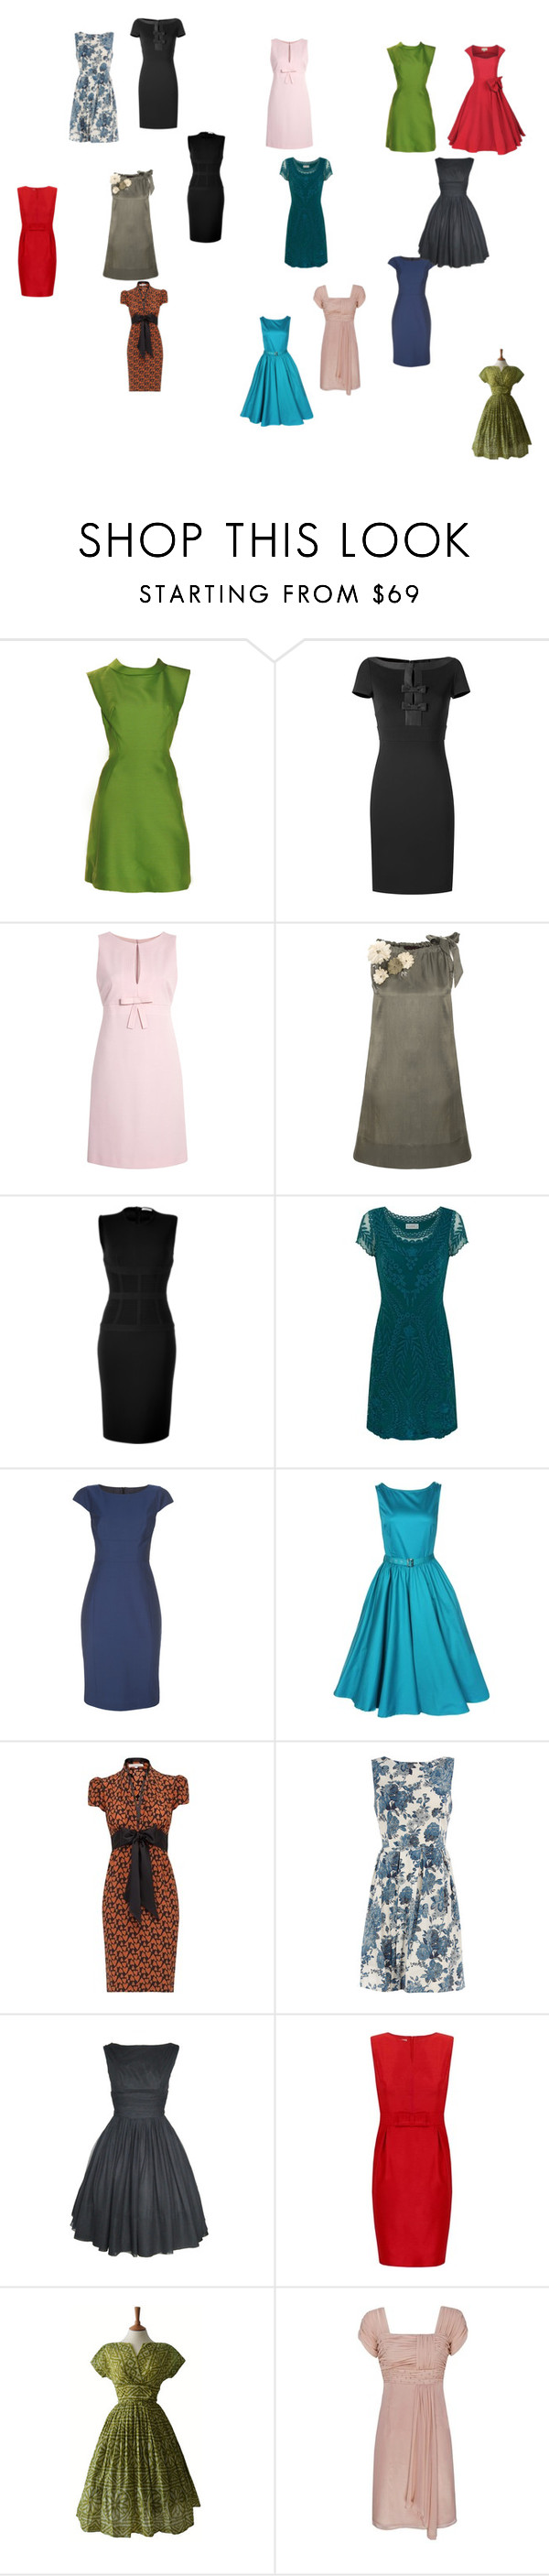 """""""Shift dresses I like"""" by jenfeatch ❤ liked on Polyvore featuring Suzy Perette, Valentino, RED Valentino, Not So Serious, Givenchy, Kaliko, Paul Smith, Dorothy Perkins, Minuet Petite and vintage inspired"""